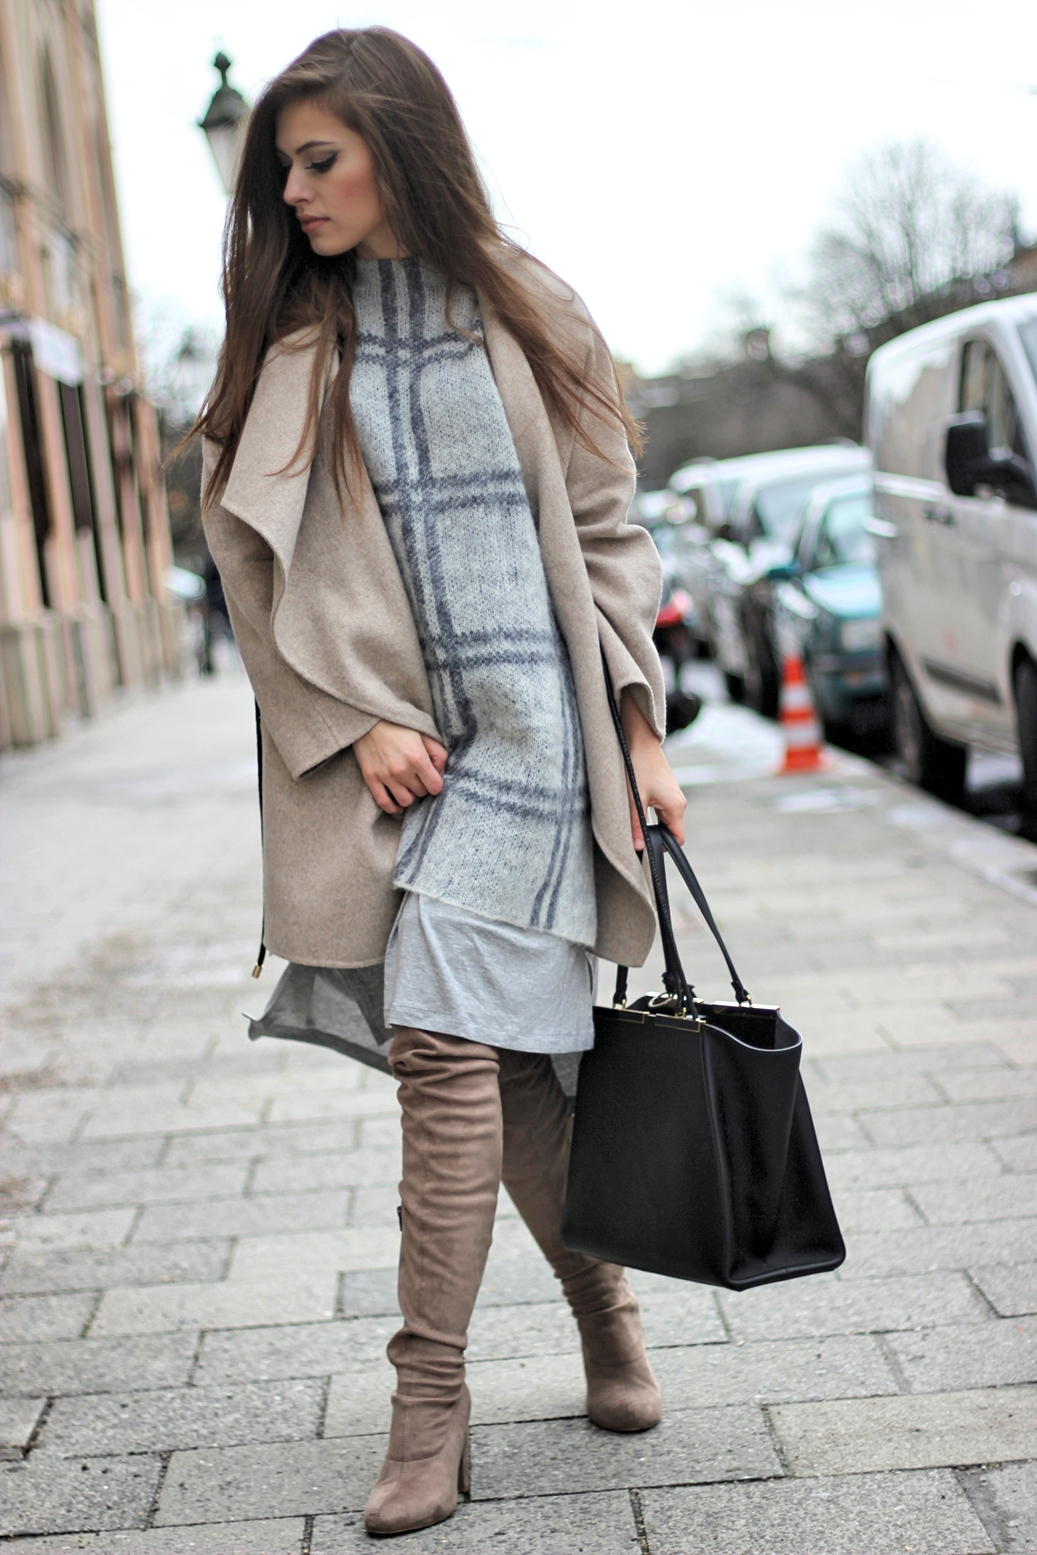 zara-street-style-blog-coat-overknee-boots-asos-fendi-bag-european-fashion